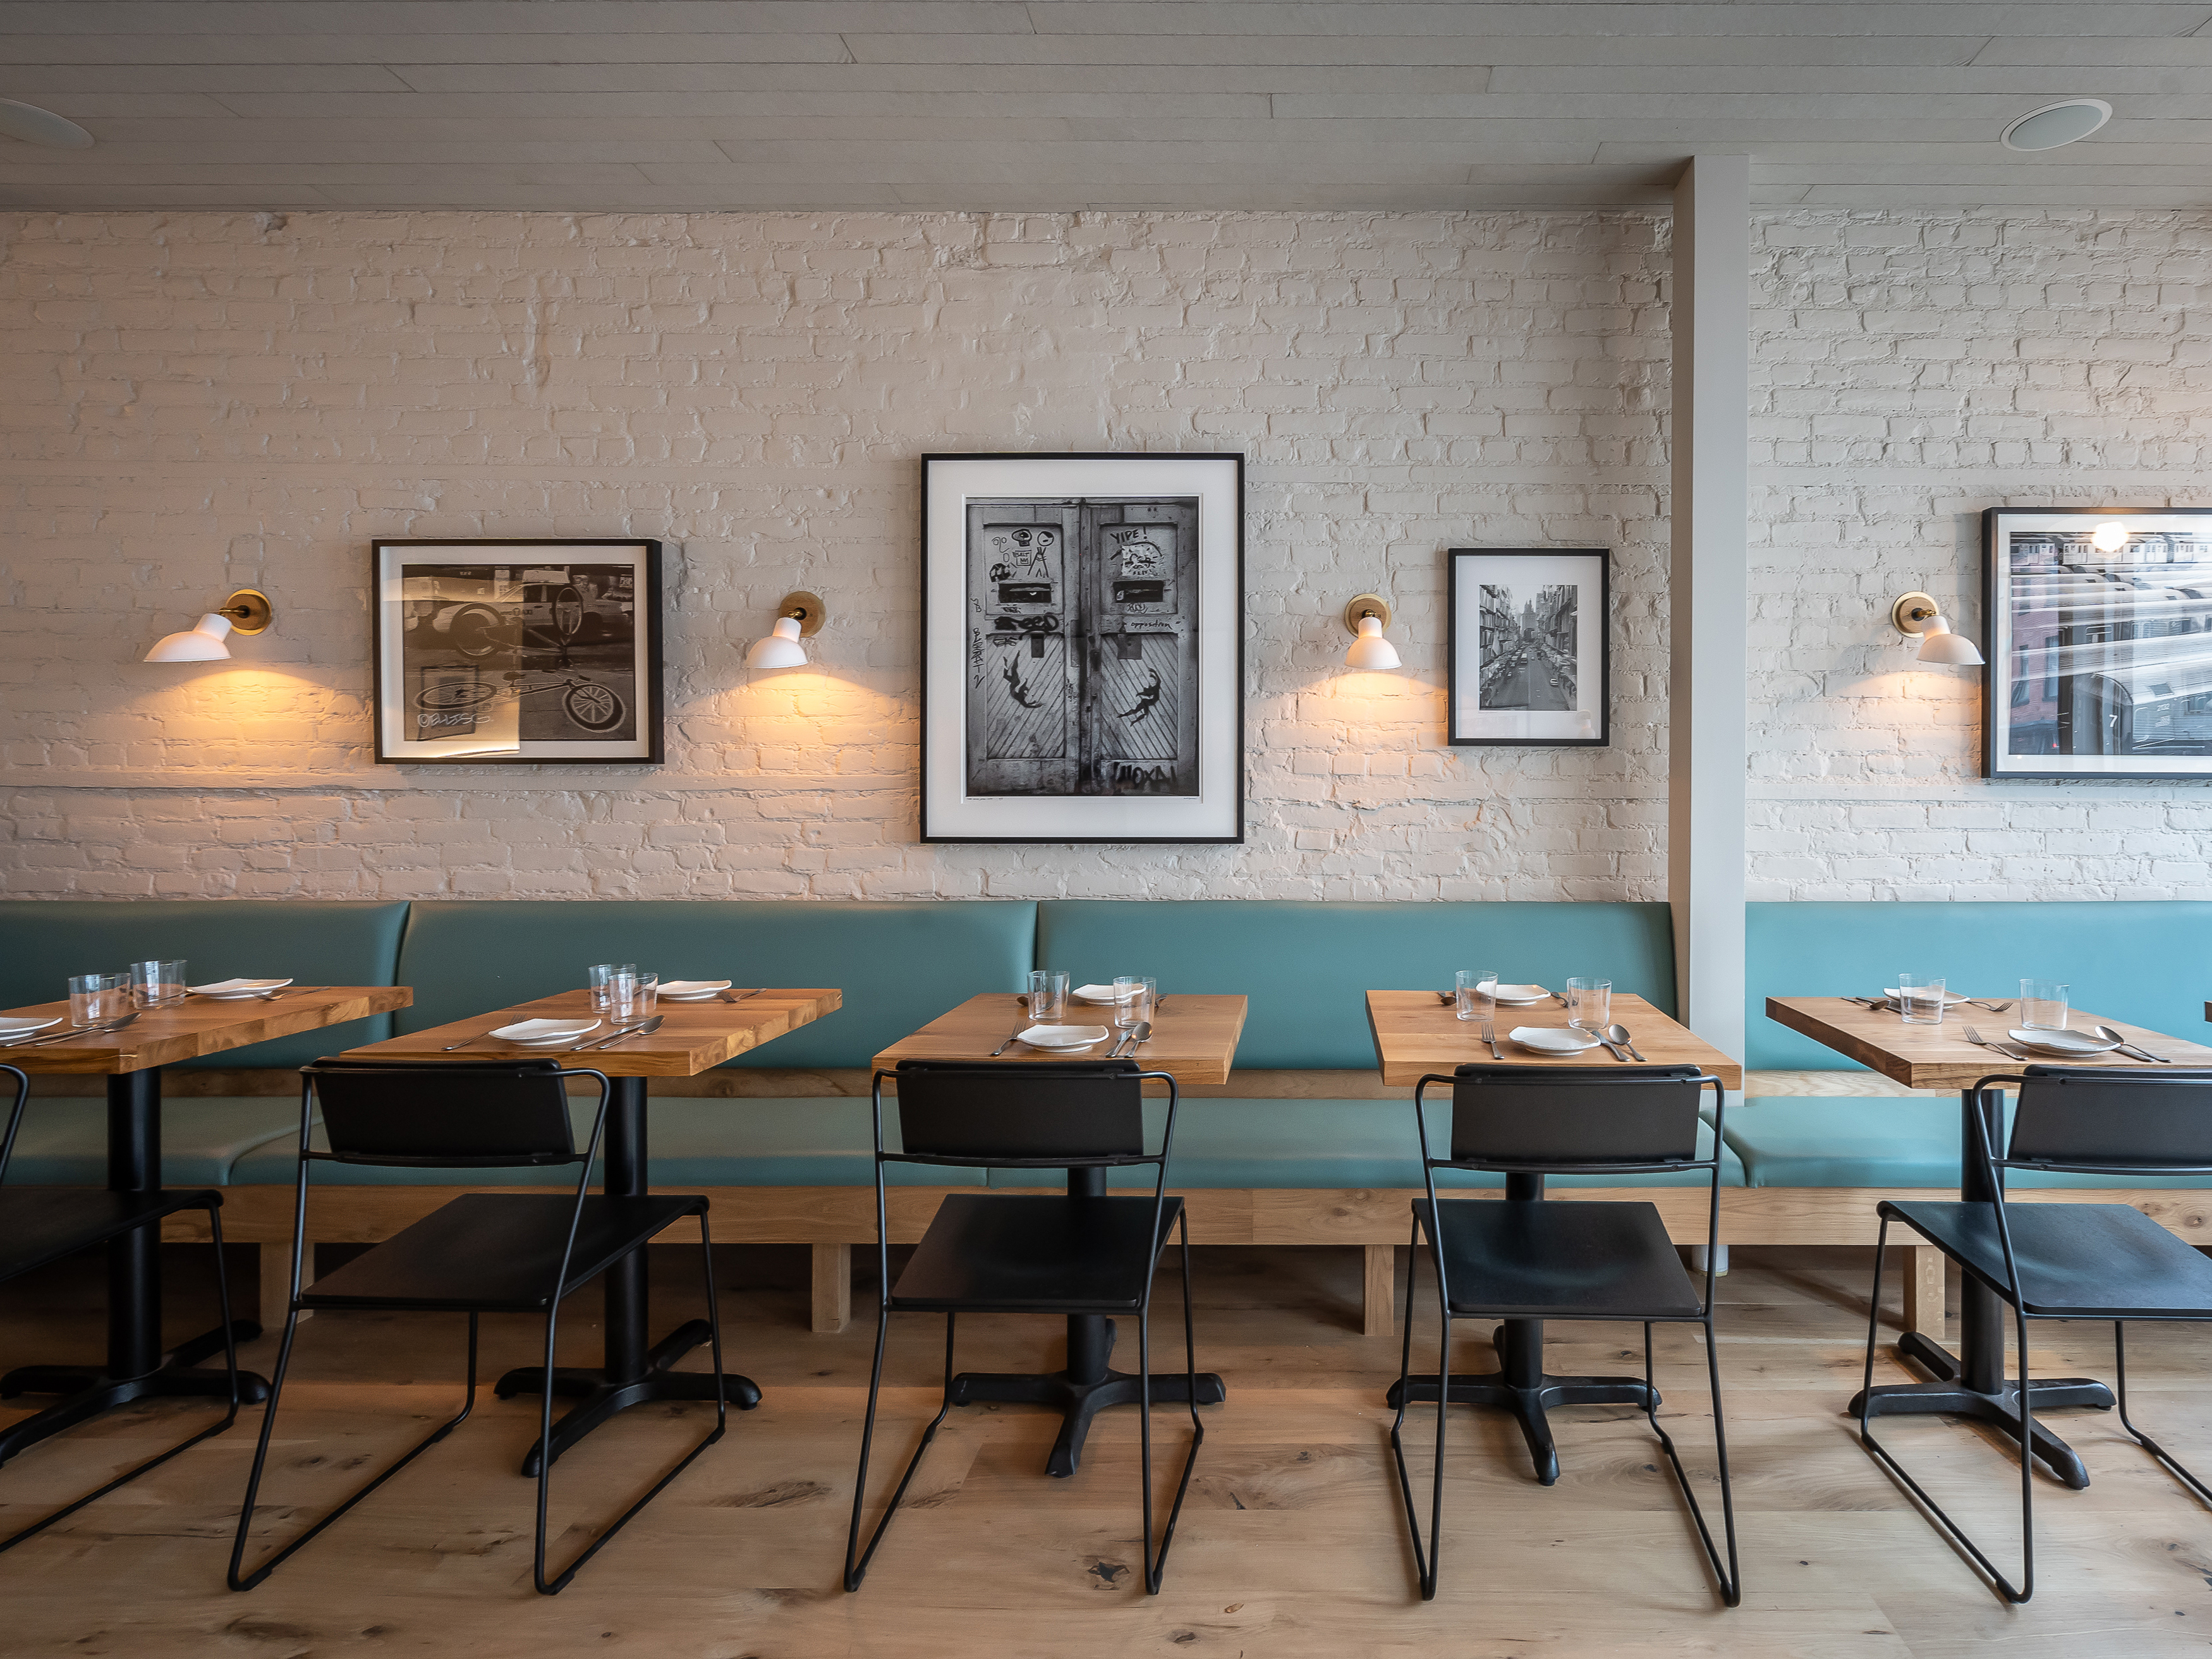 Southwestern Flavors Take Center Stage at Celebrated Restaurateur's First NYC Spot